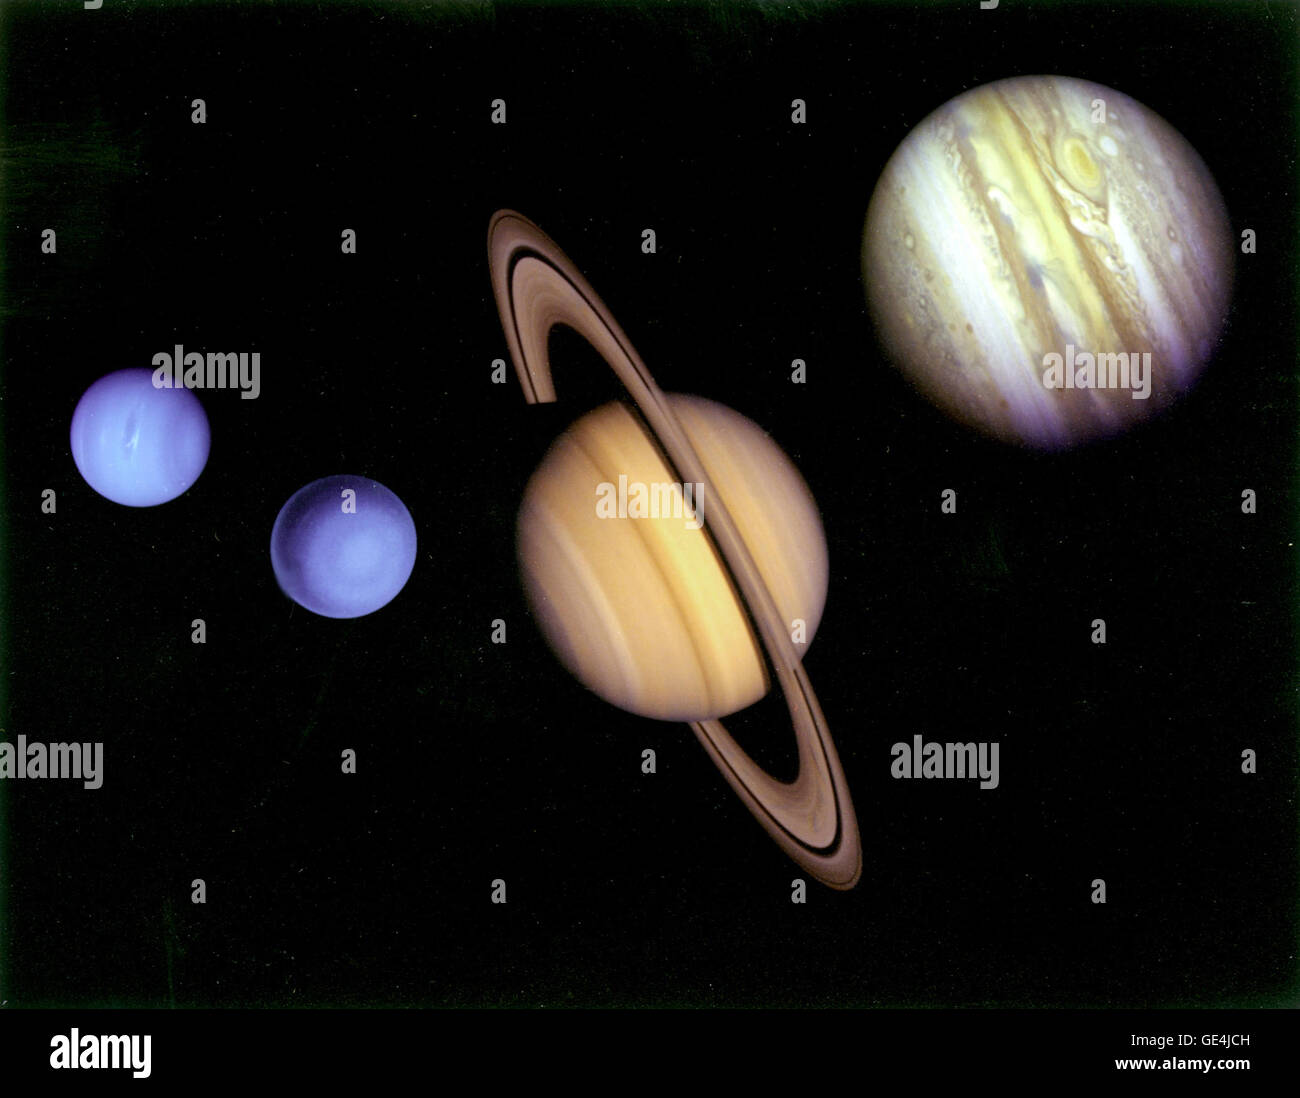 This montage of images of the planets visited by Voyager 2 was prepared from an assemblage of images taken by the - Stock Image